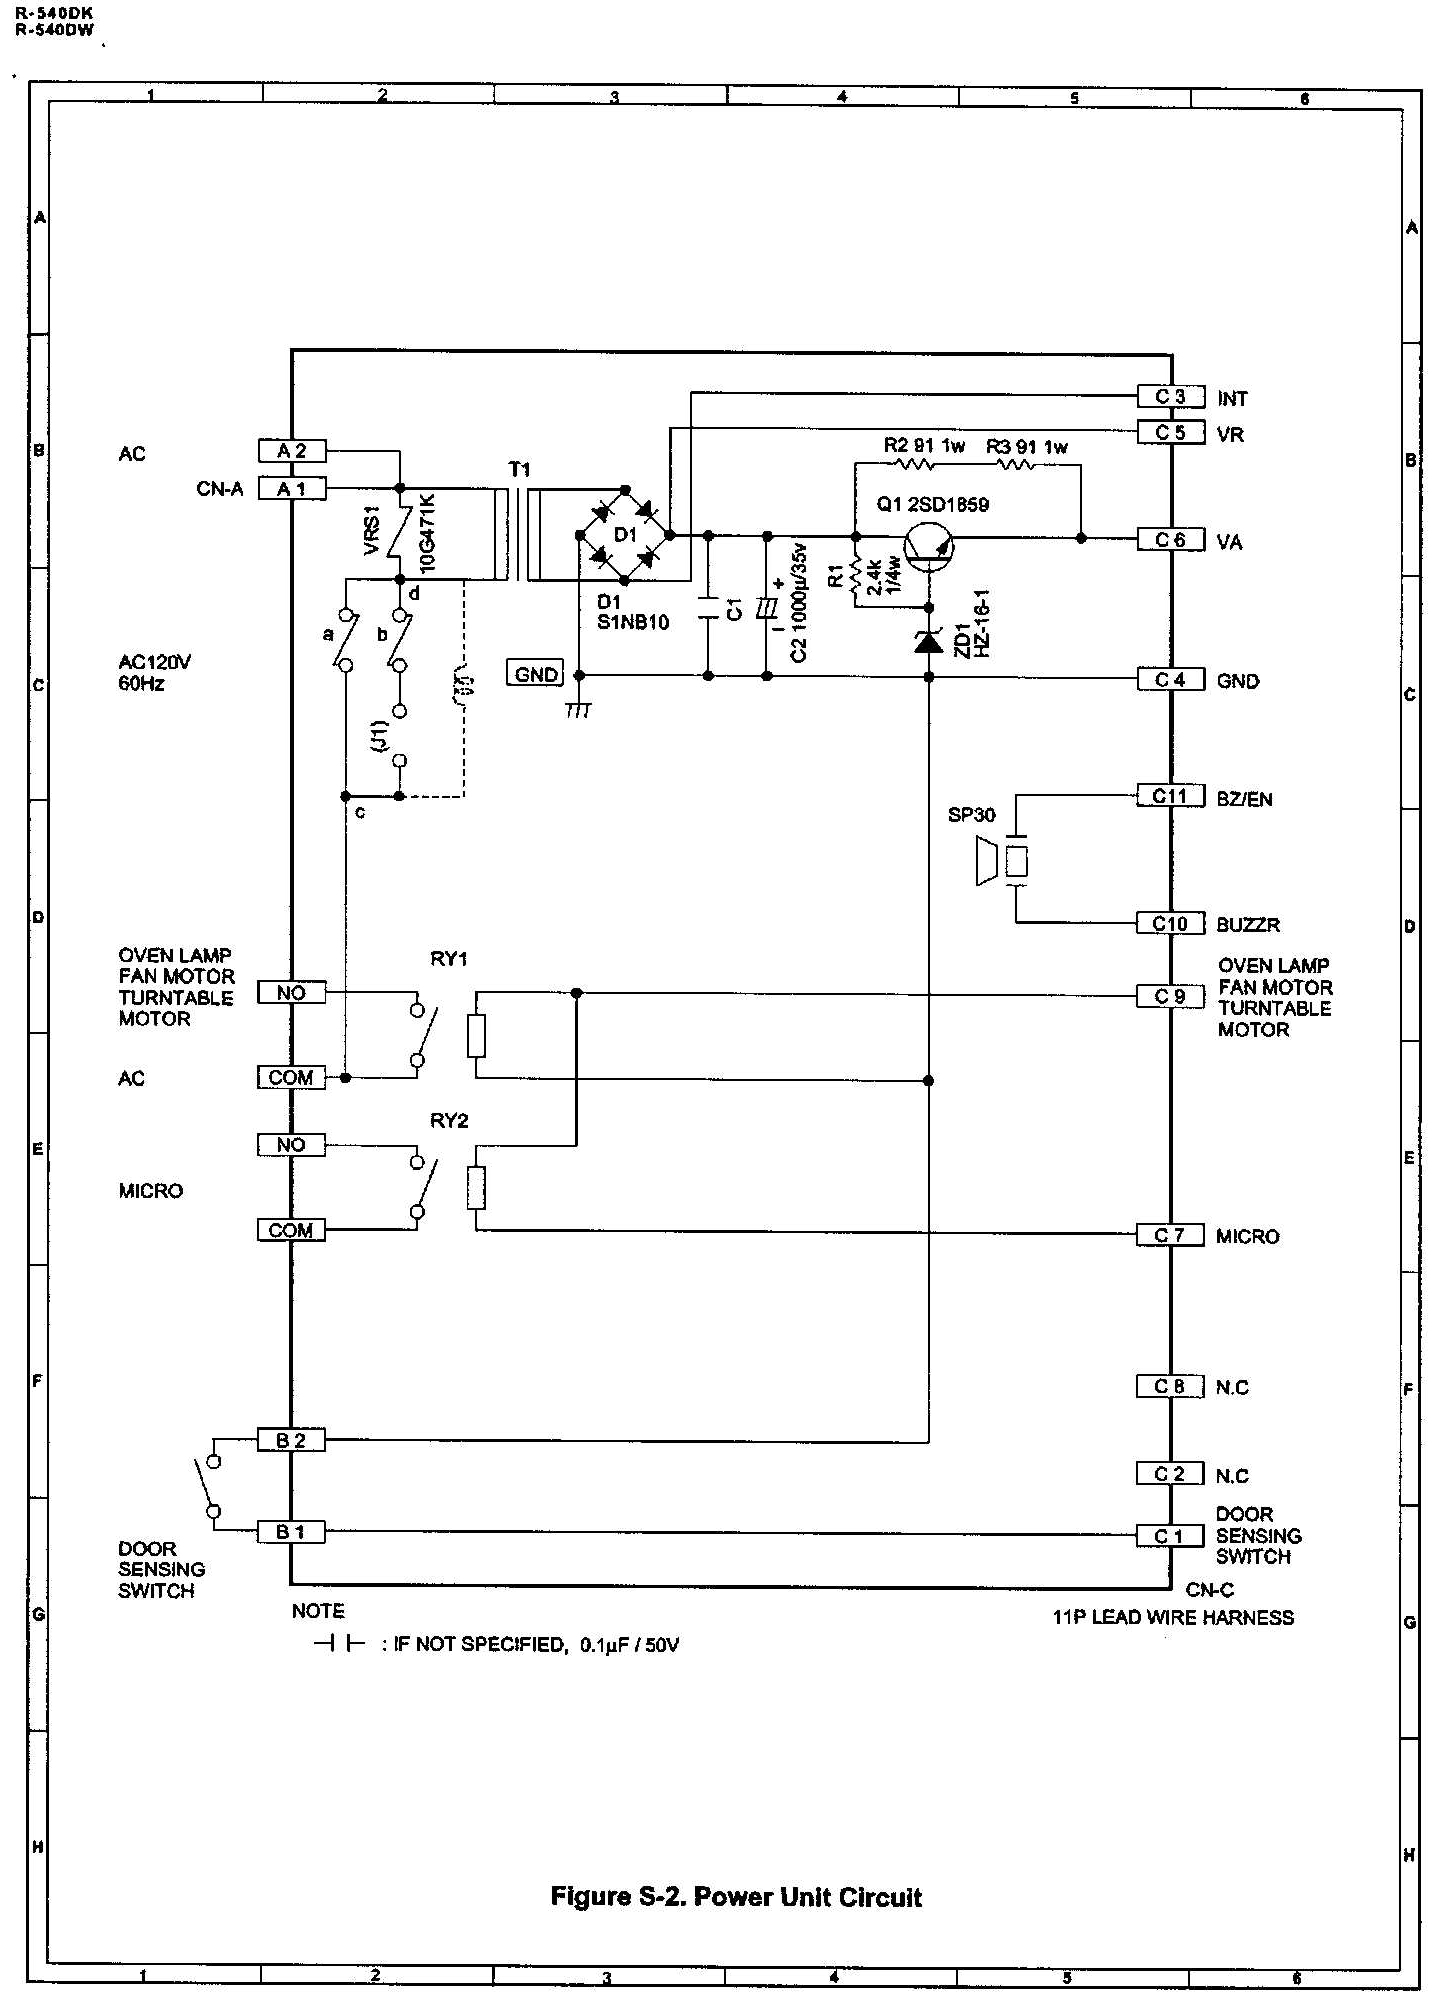 Frigidaire Gallery Dryer Wiring Diagram from static-assets.imageservice.cloud